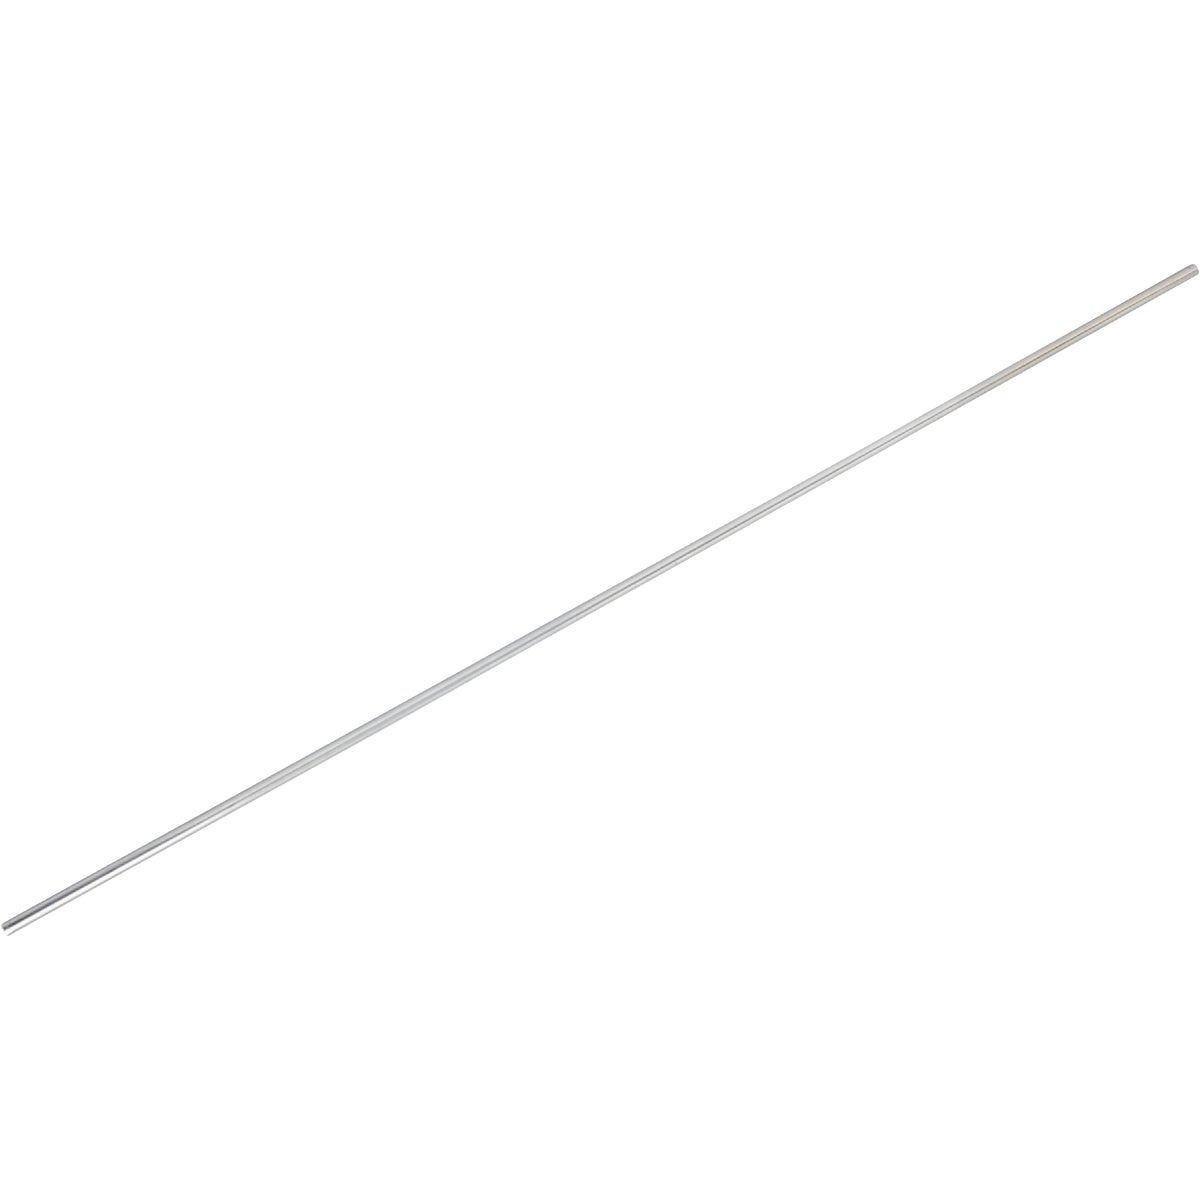 "12"" GALV WIRE STAKES - R385CT by Raindrip Inc"